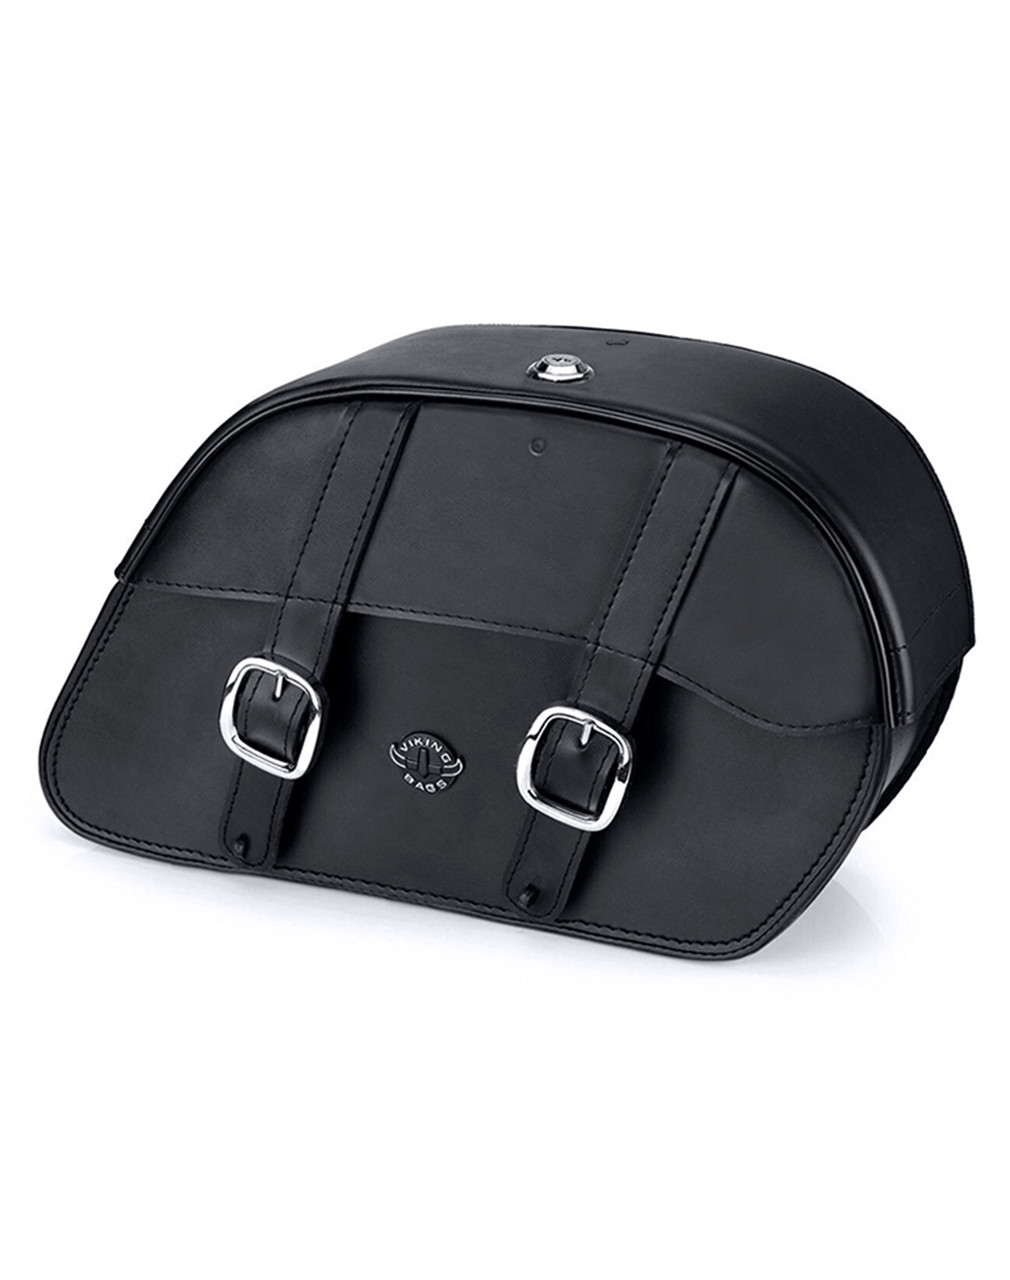 VikingBags Skarner Large Double Strap Leather Motorcycle Saddlebags For Harley Softail Night Train FXSTB Main Bag View